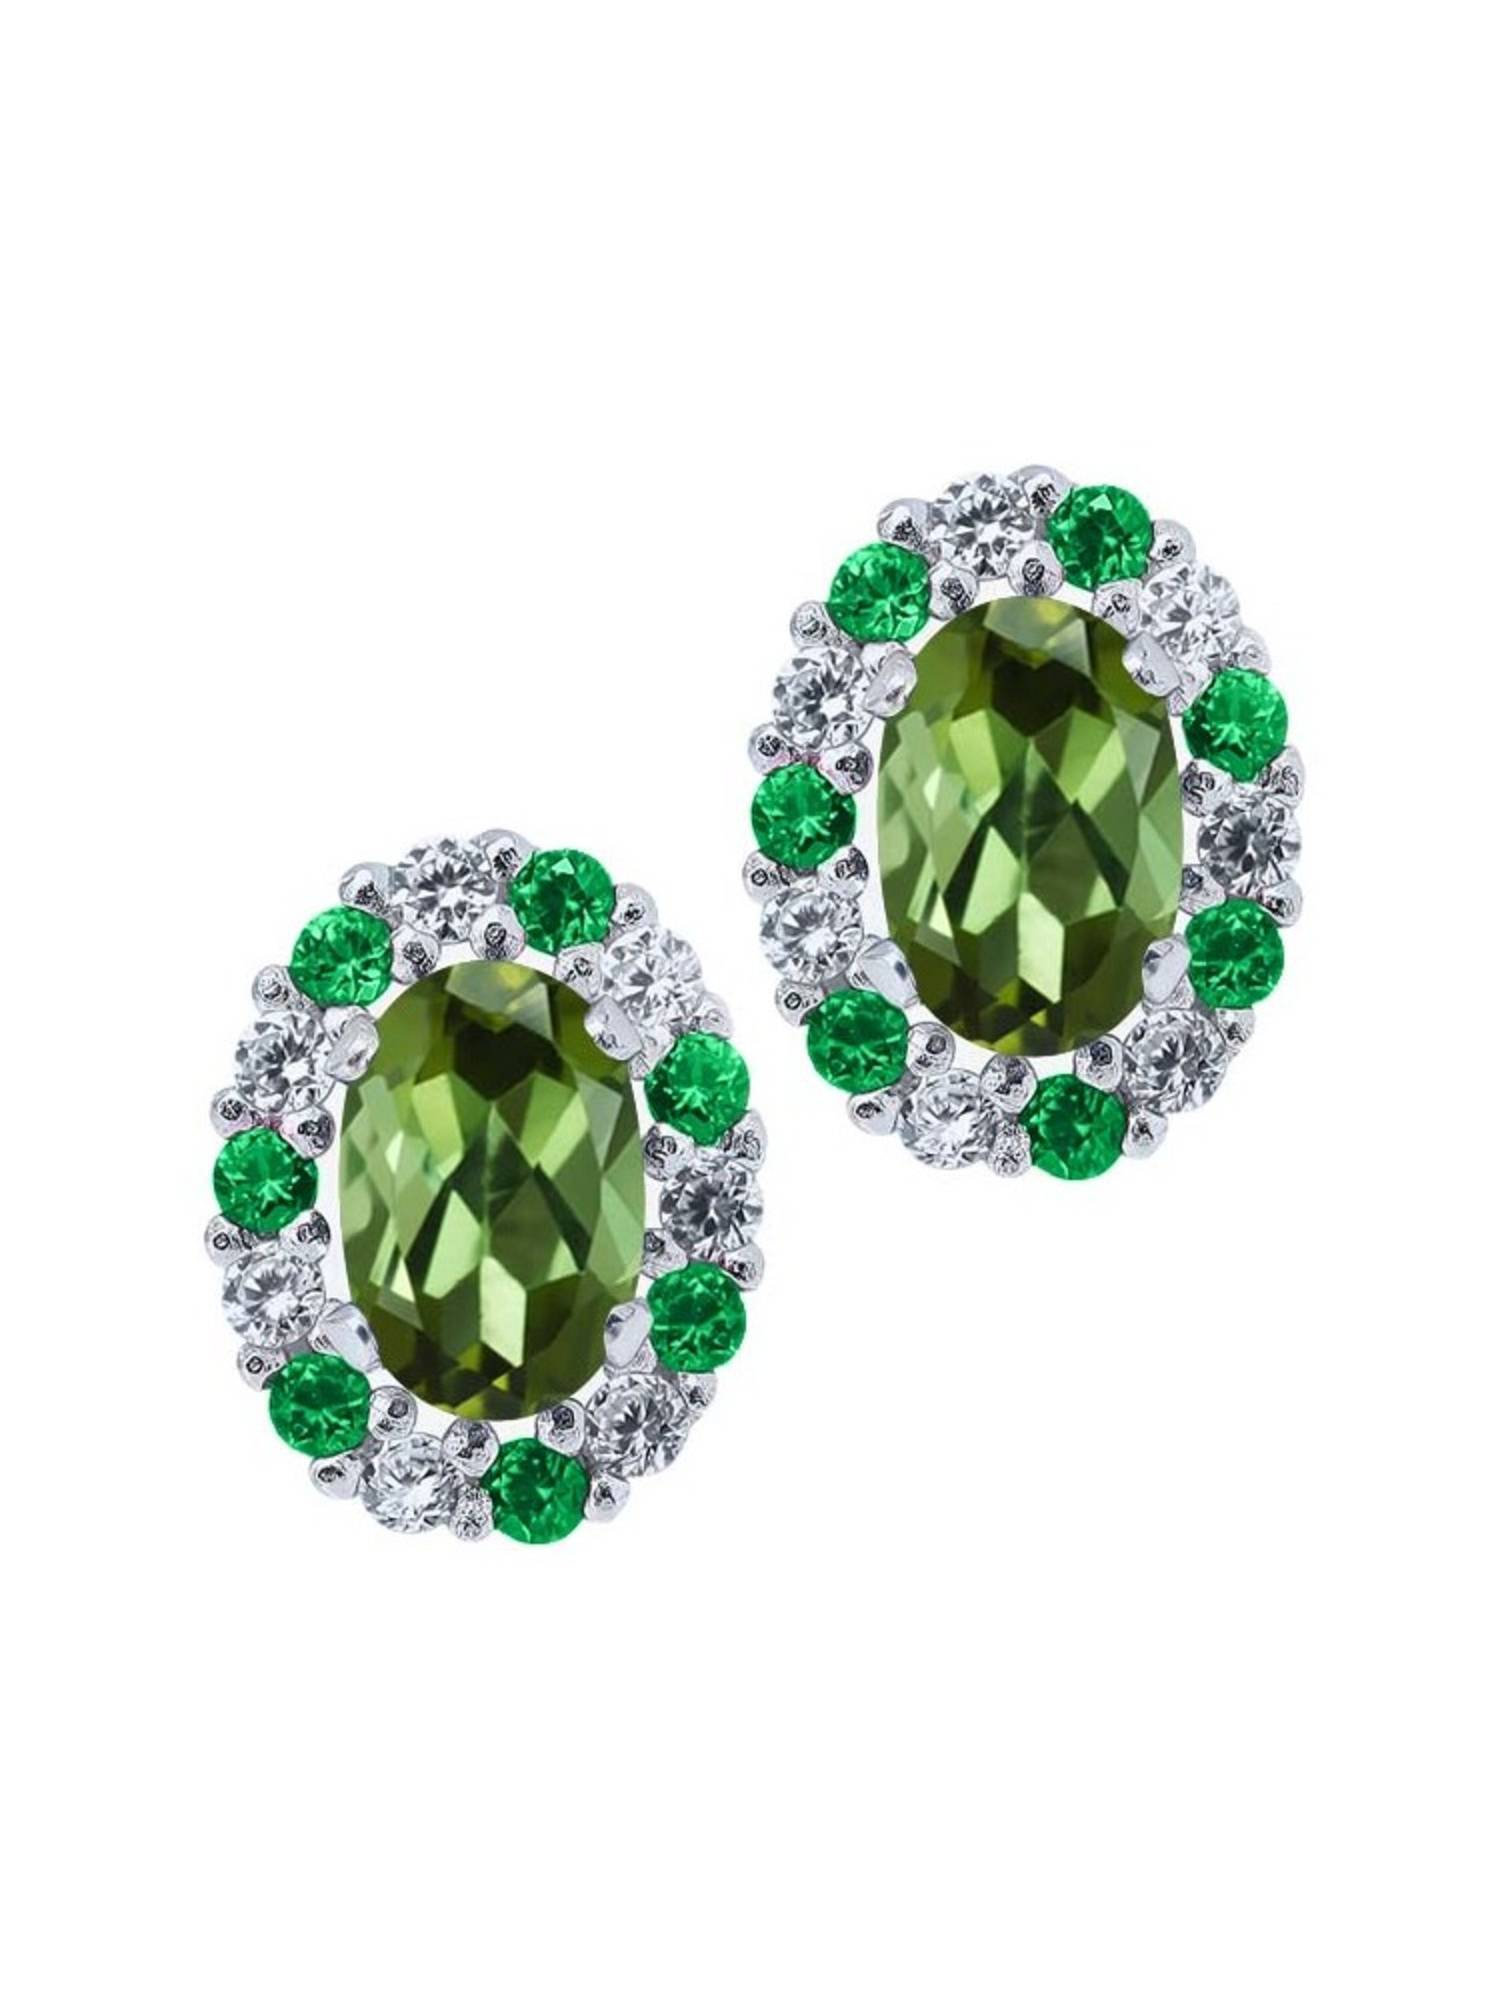 1.16 Ct Oval Green Tourmaline 925 Sterling Silver Earrings with Jackets by